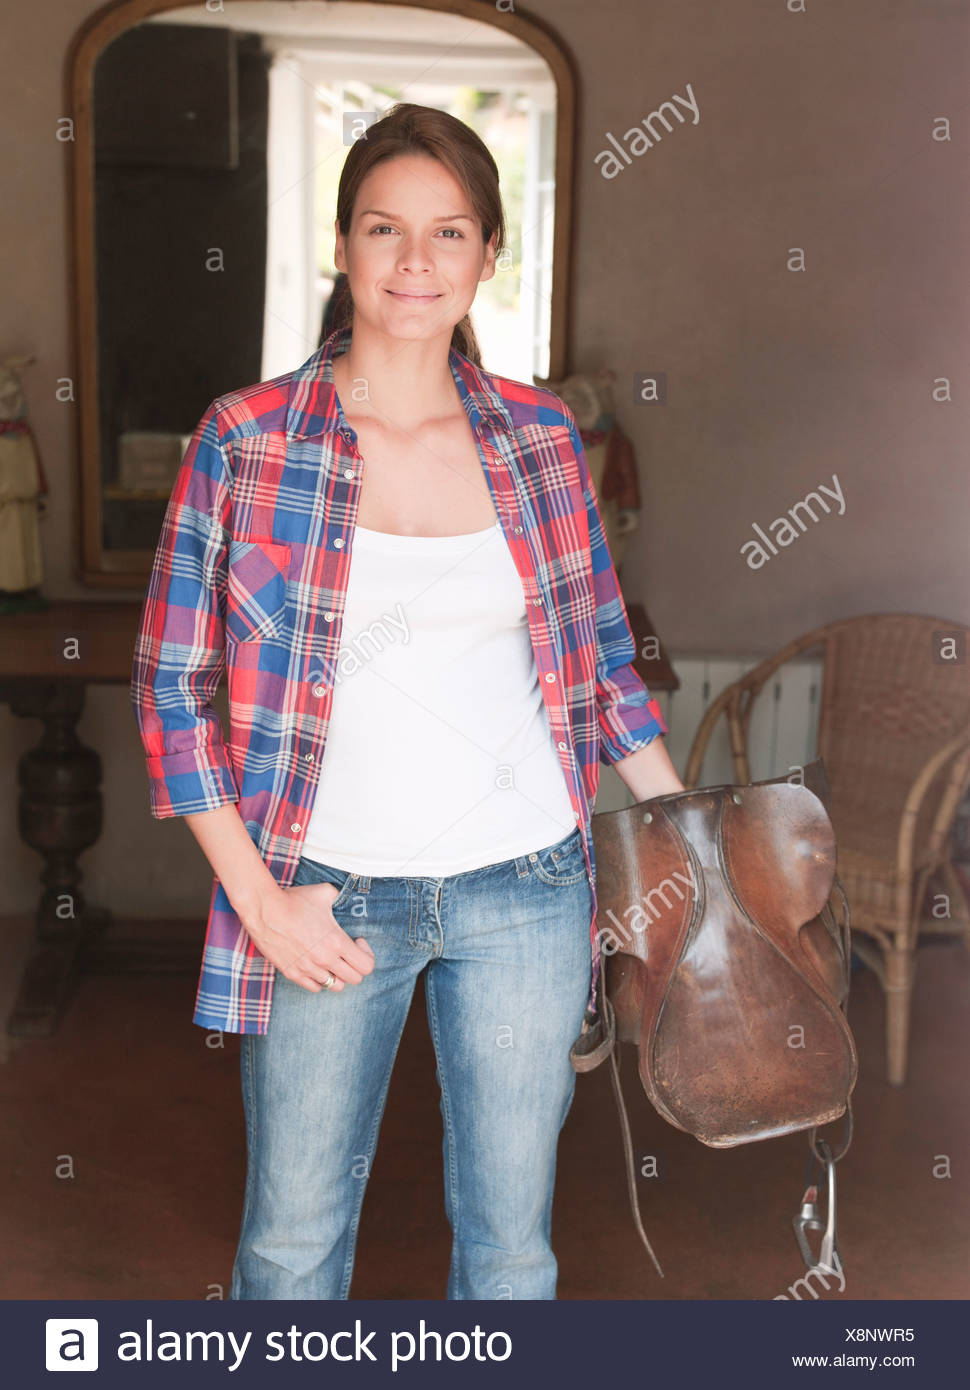 woman in doorway,smiling with saddle - Stock Image